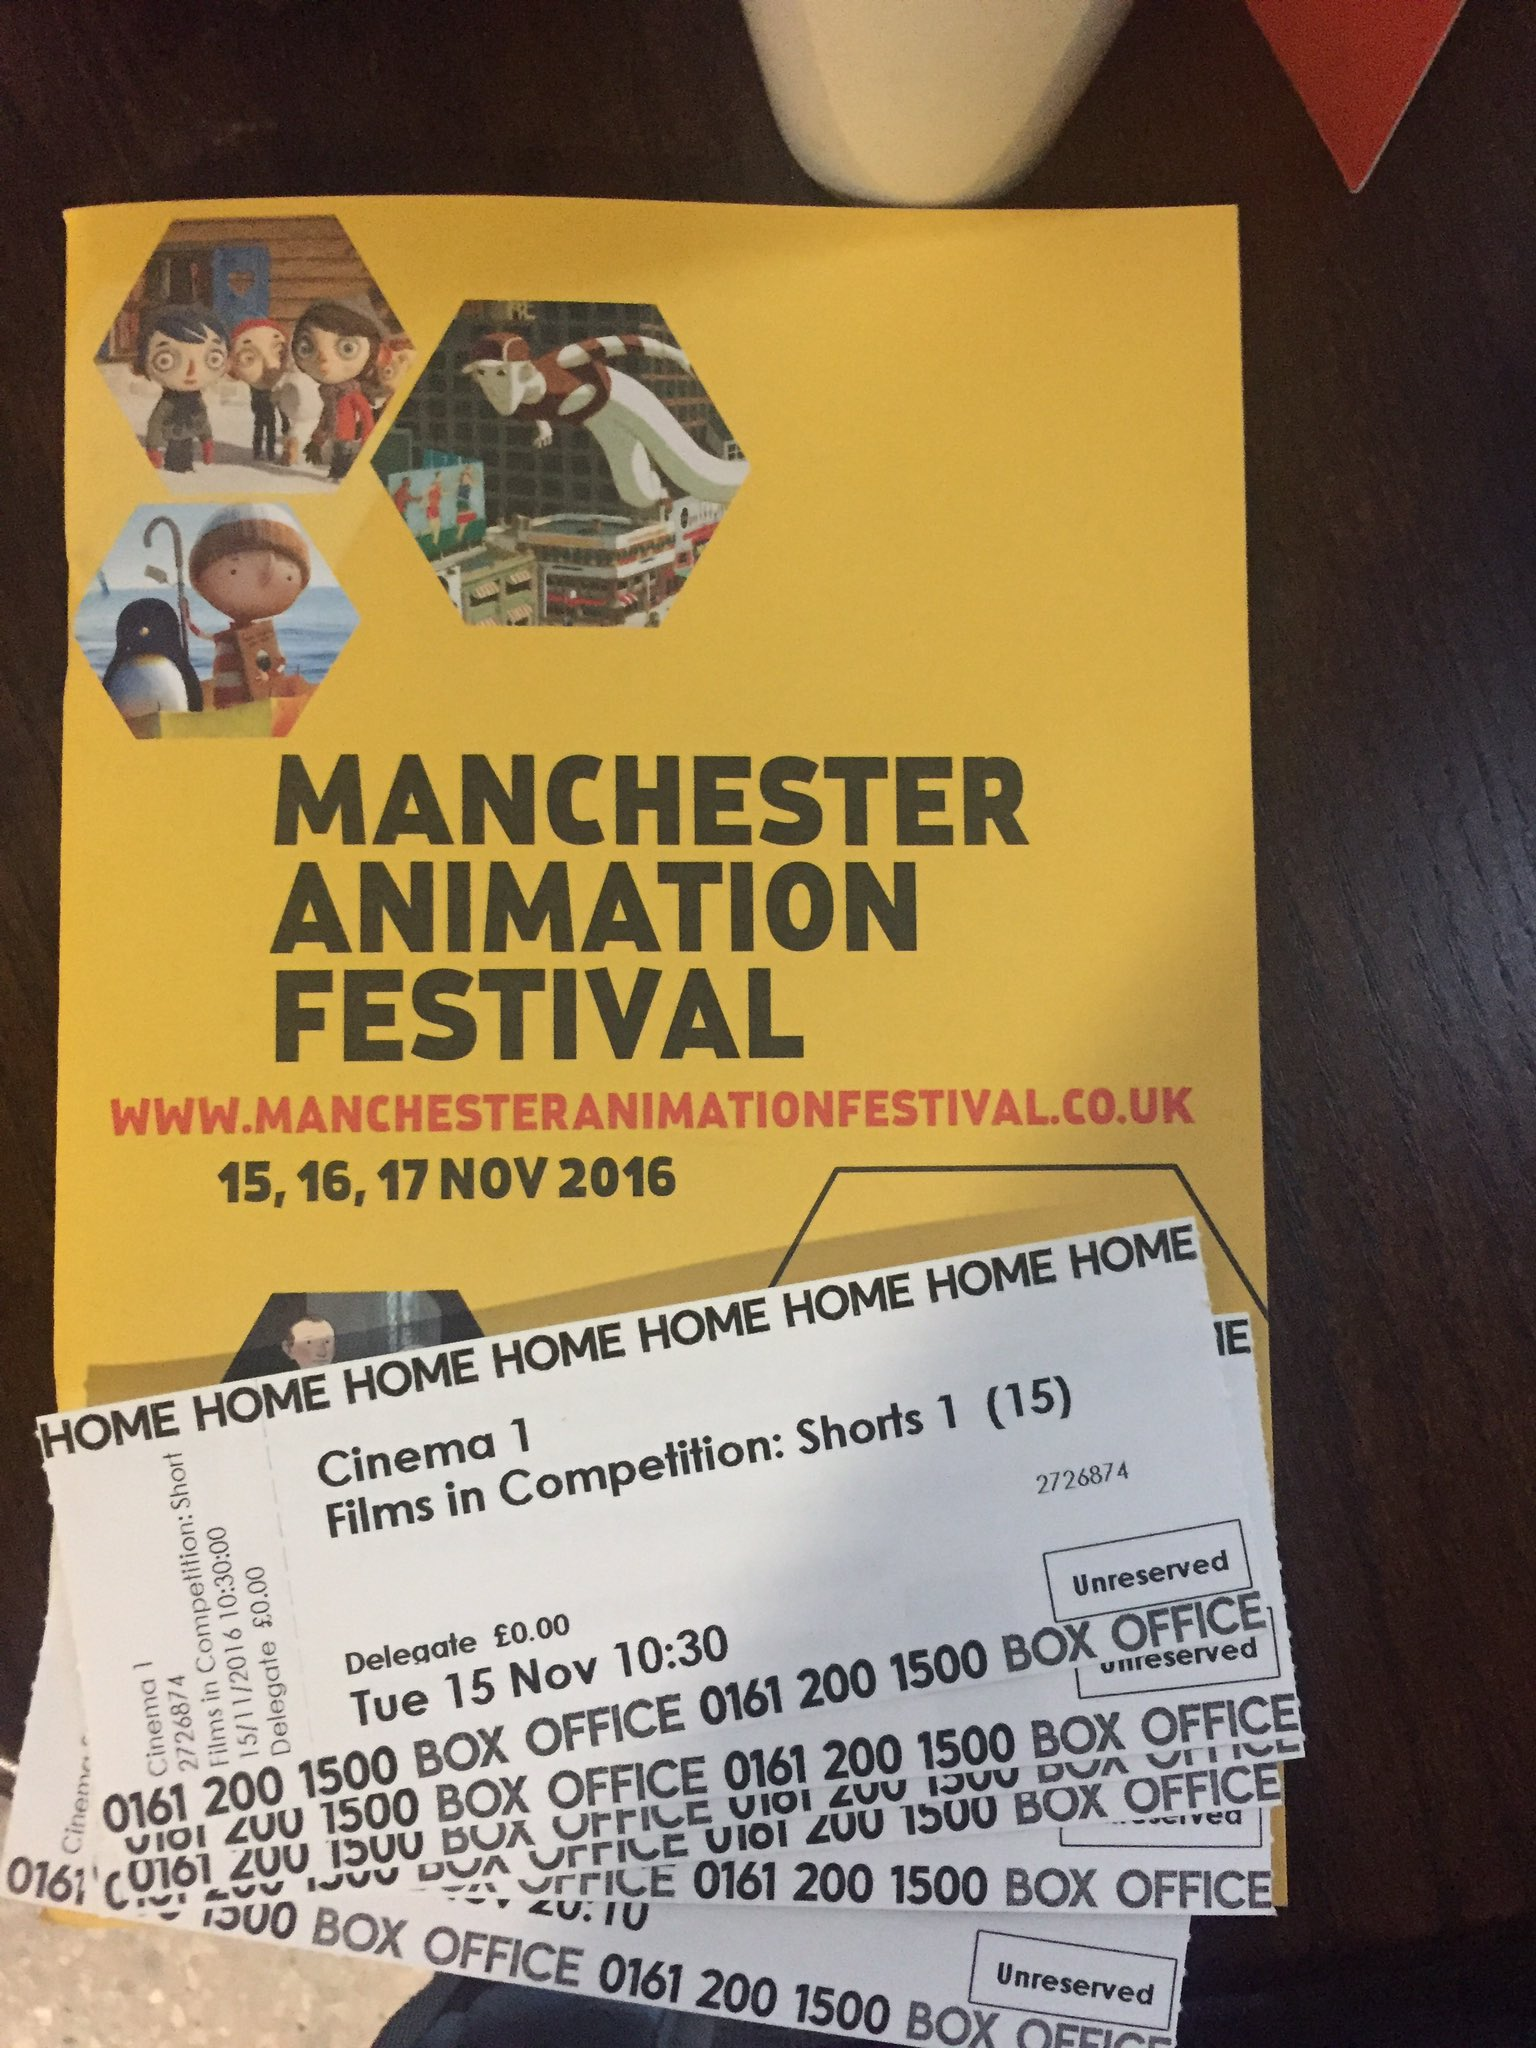 So ready for this @mcranimation  💛🐝✨ #MAF #Animation #Manchester https://t.co/A8KBjudvYp